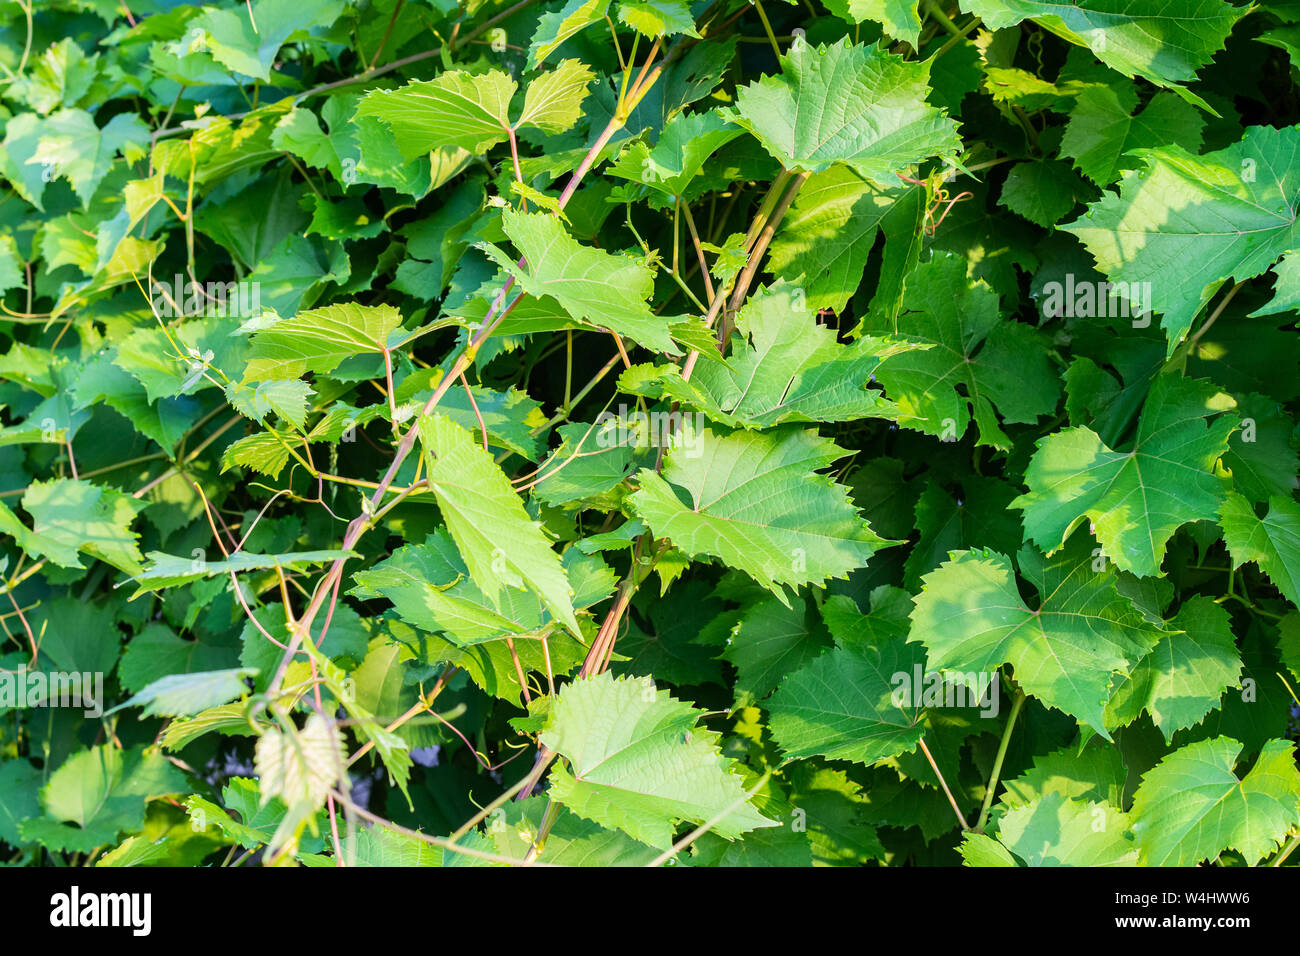 Green Leaves Of Blue Grapes Grape Foliage Leaf Background Stock Photo Alamy